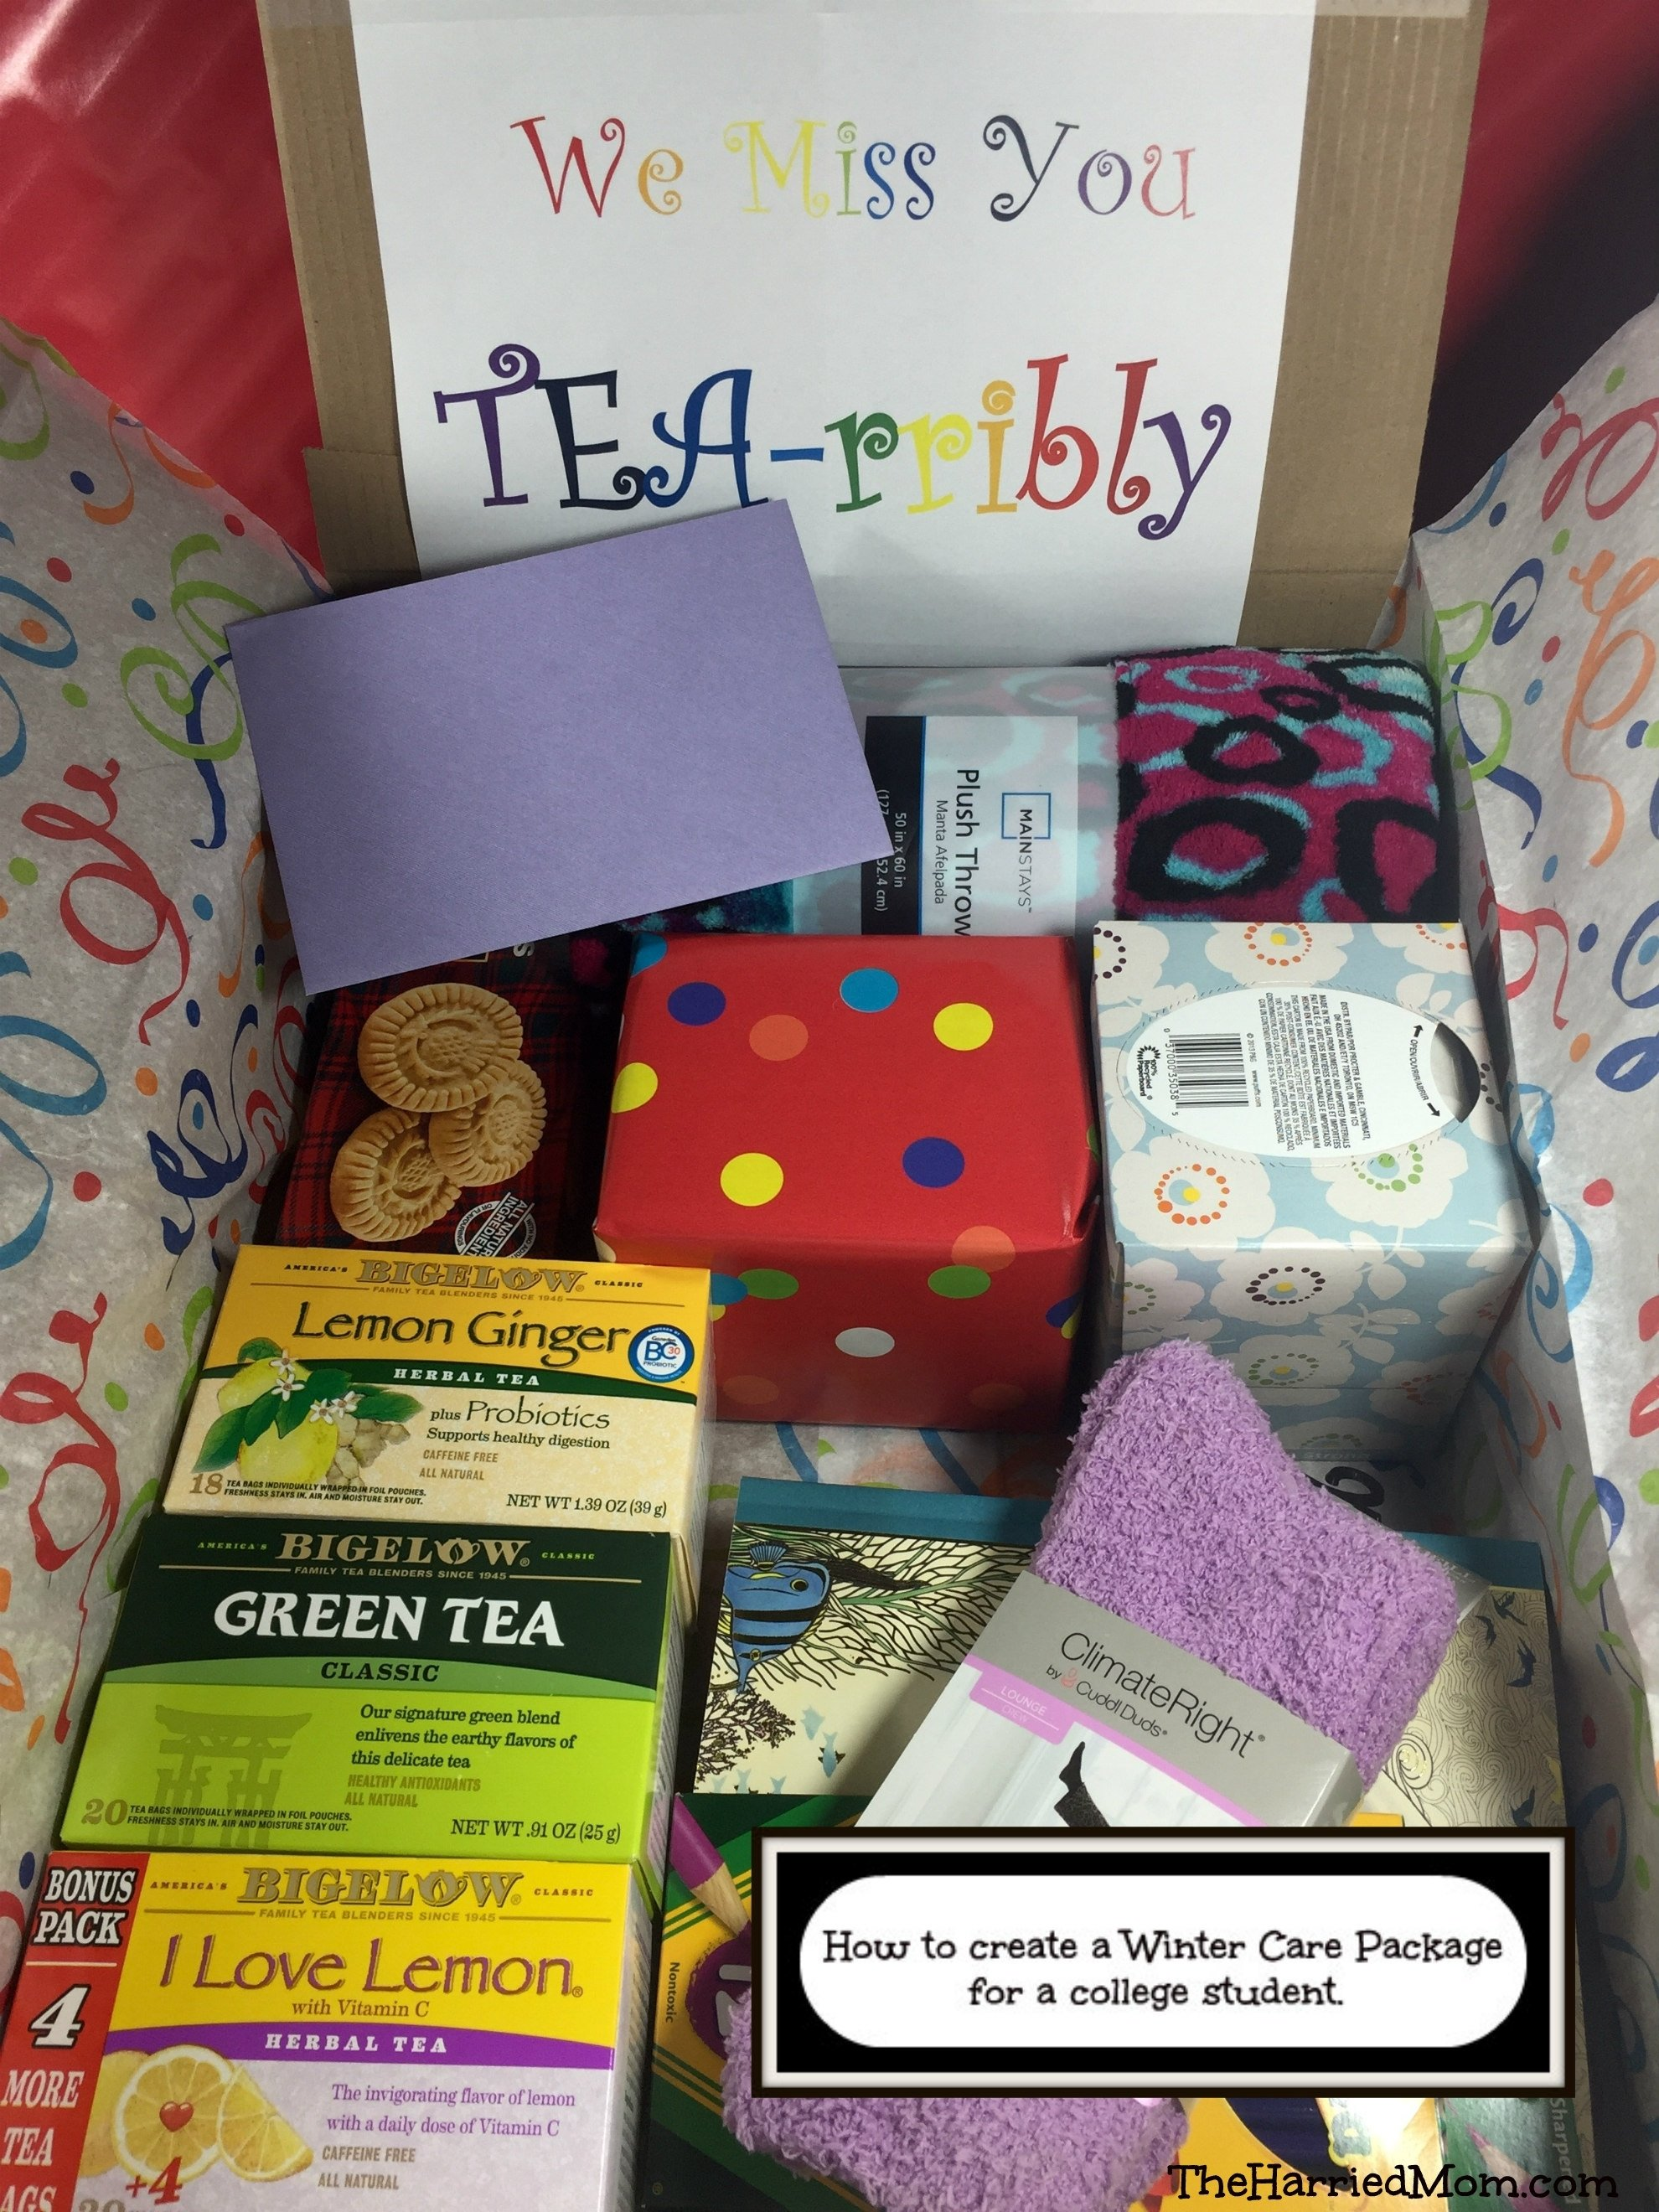 10 Fabulous Ideas For College Care Packages how to create a winter care package for a college student 5